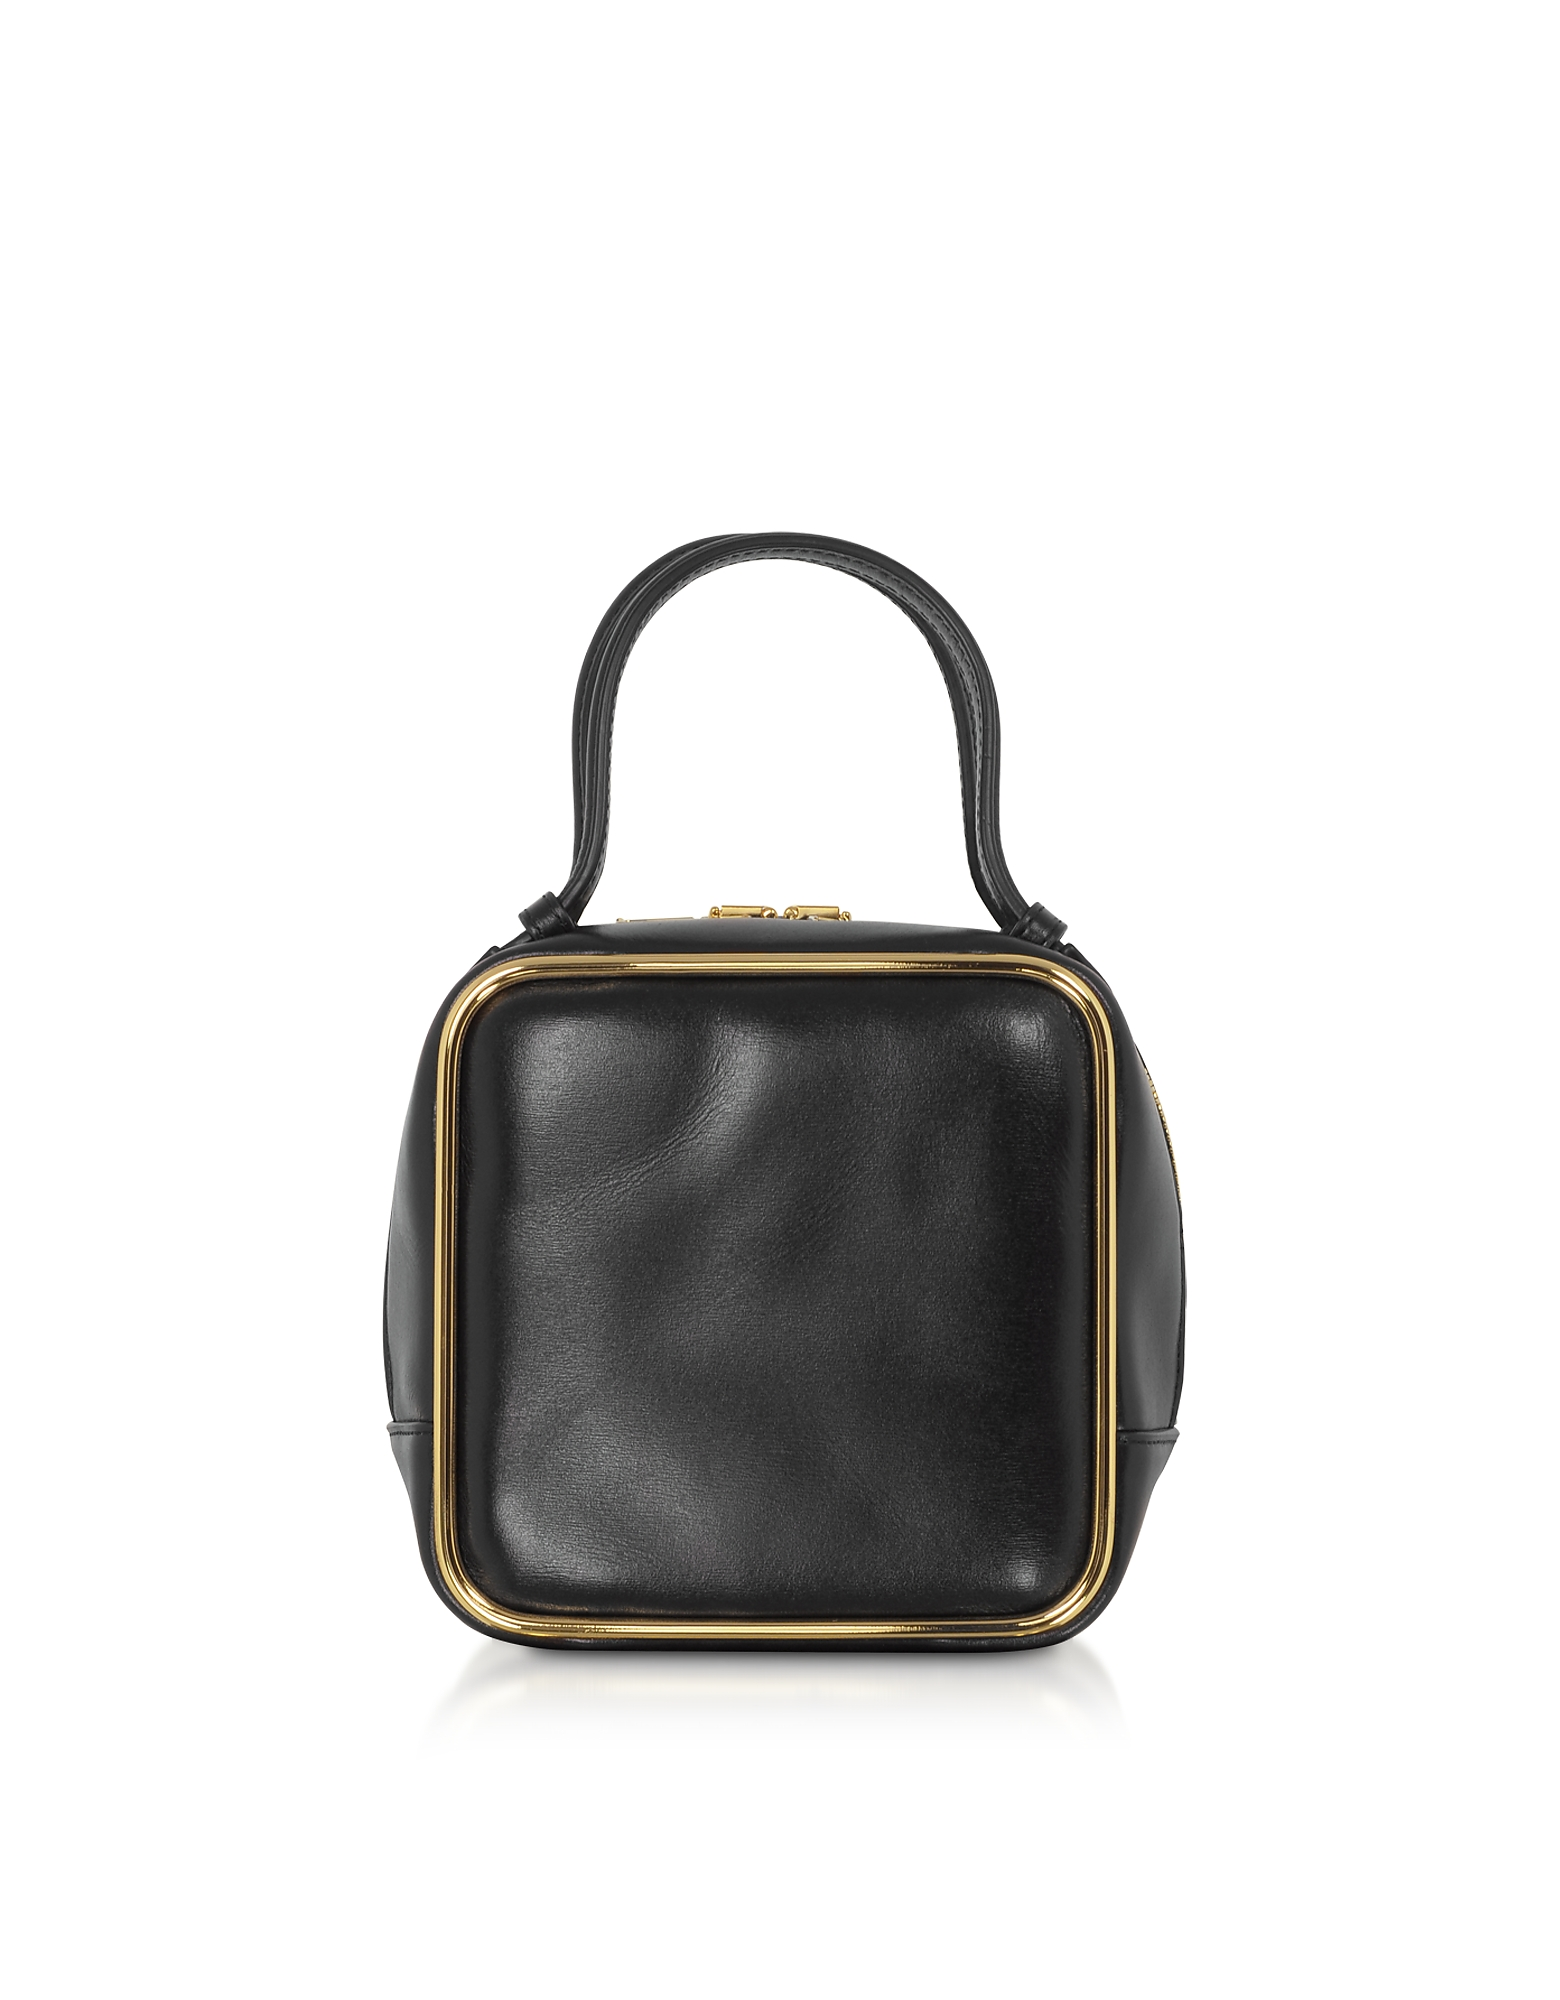 Alexander Wang Designer Handbags, Black Leather Halo Top Handle Satchel Bag